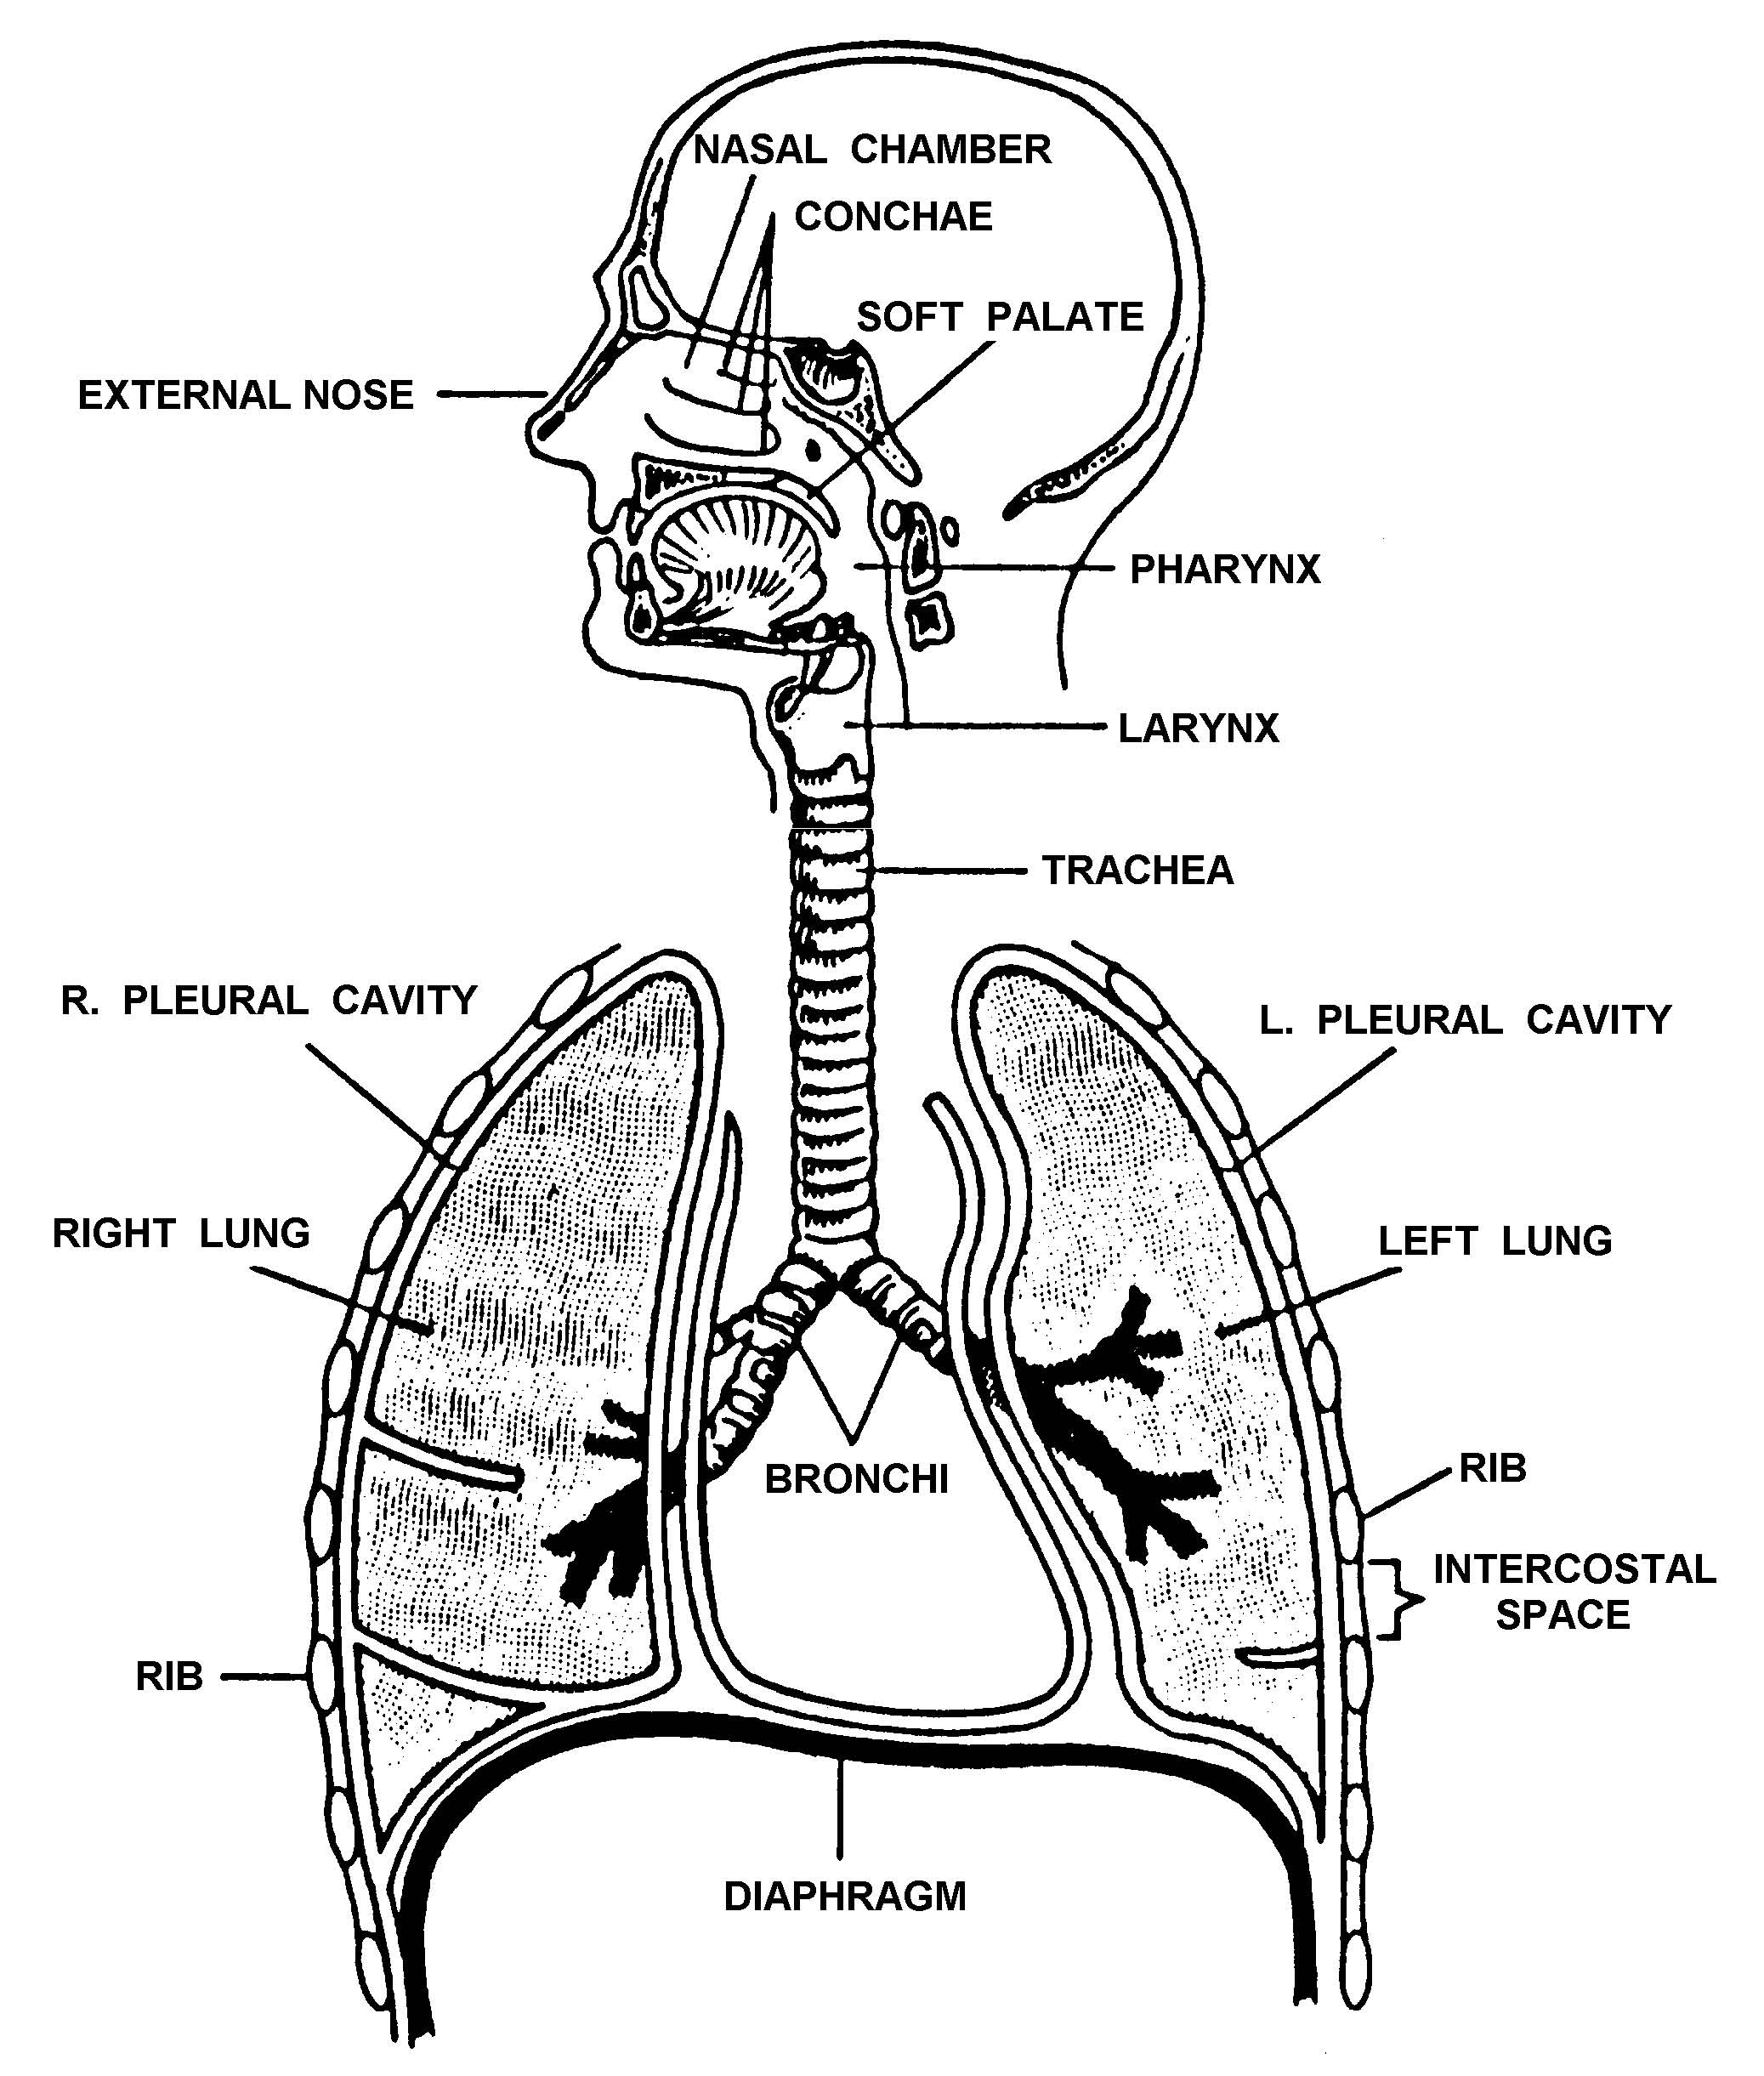 1-5. THE RESPIRATORY SYSTEM